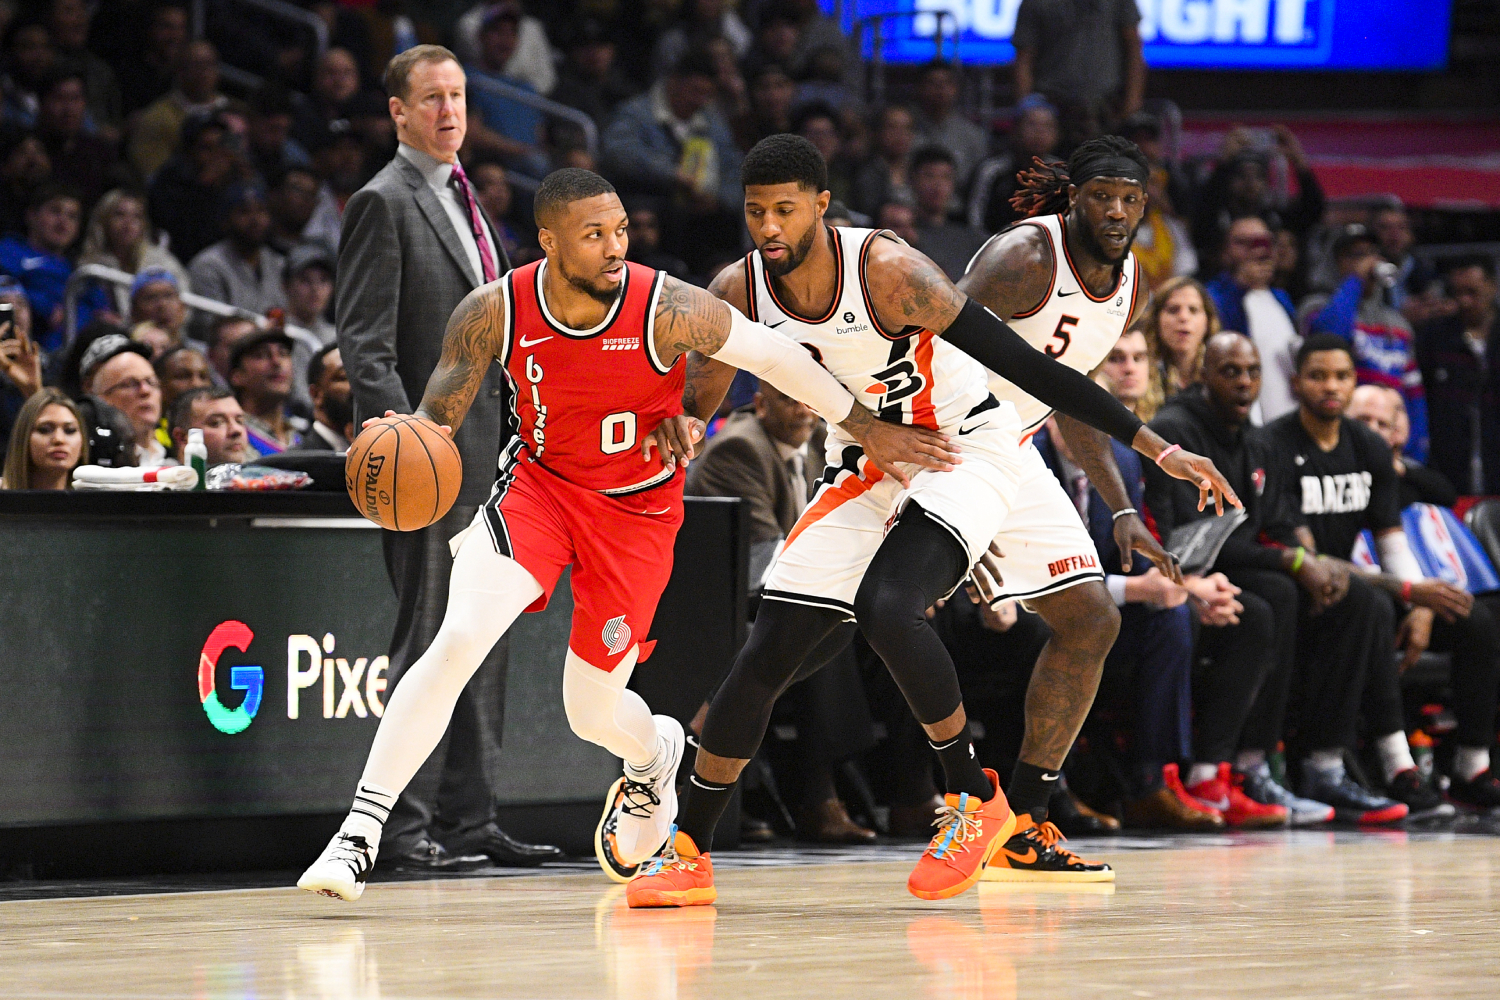 Damian Lillard and Paul George have both had a lot of success in the NBA, but which superstar has a higher net worth?